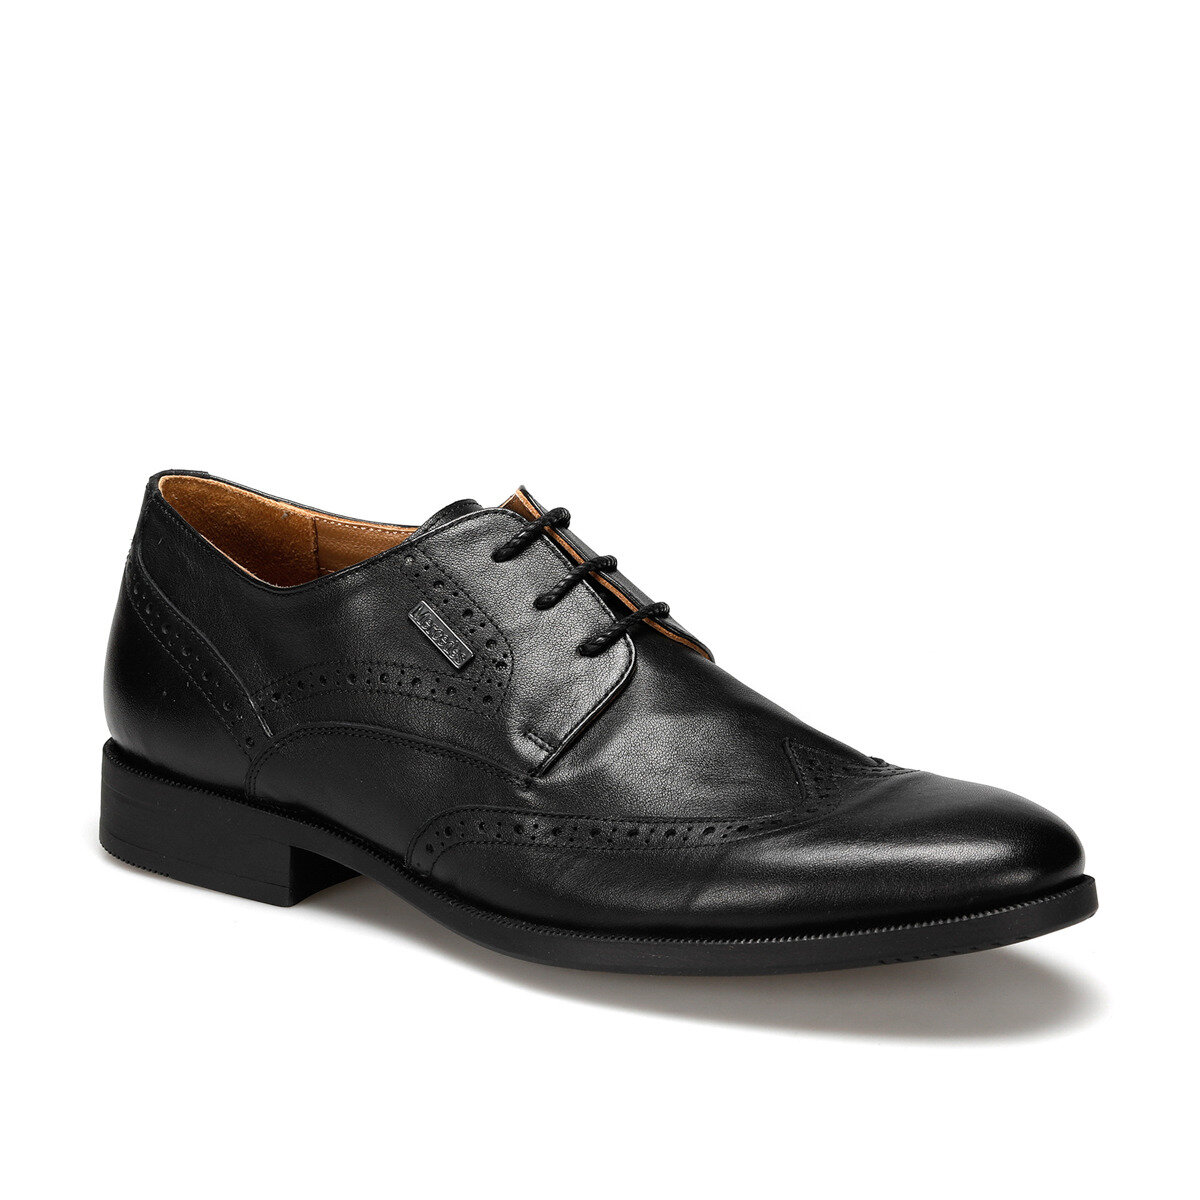 FLO MAGNETO Black Men Dress Shoes MERCEDES